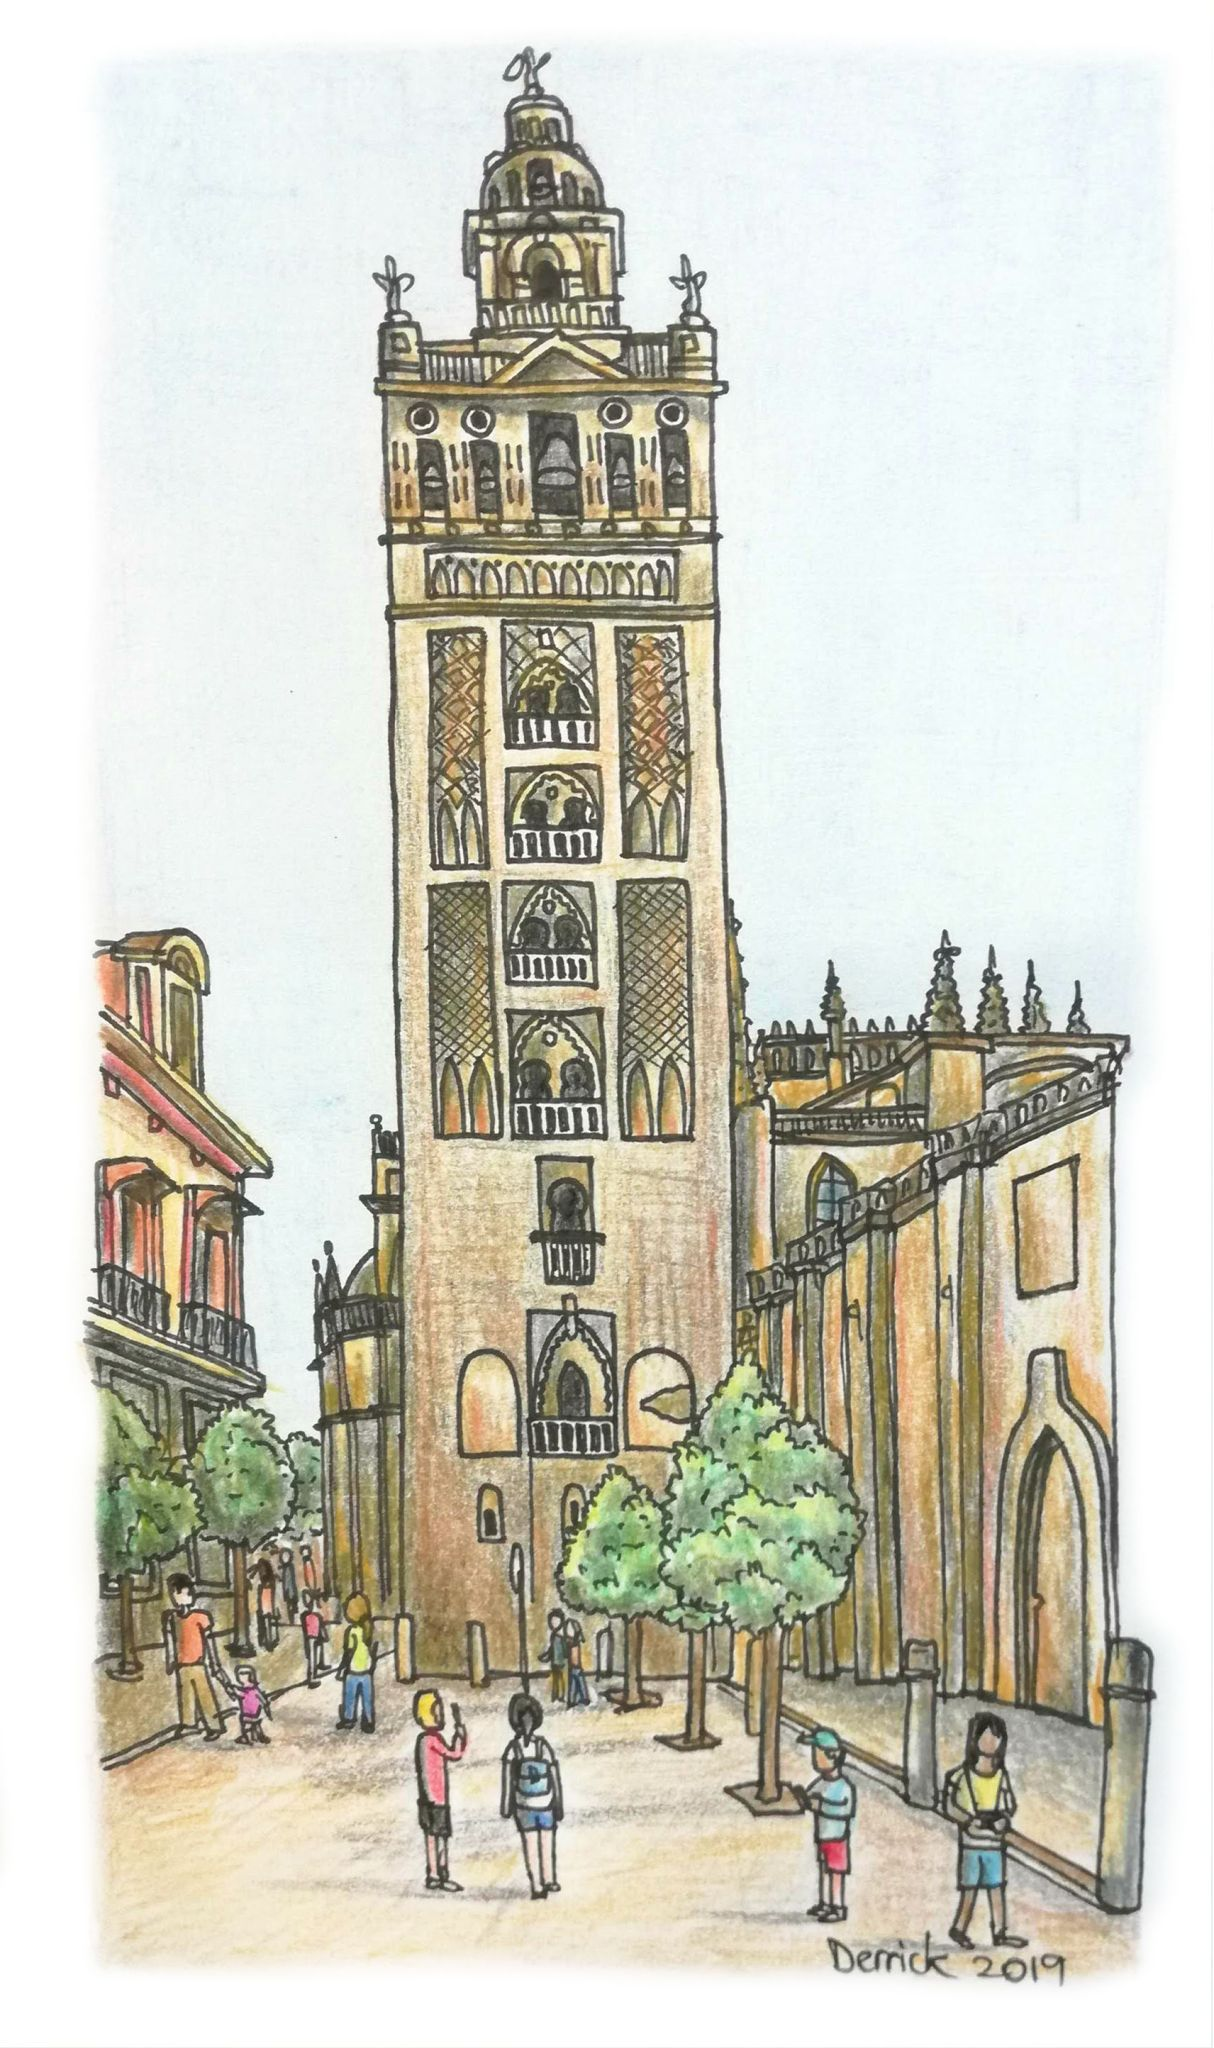 What To Do In Seville An Illustrated Guide To Spain S Cultural Gem Stickymangorice En 2020 Catedral De Sevilla Museos Dibujos